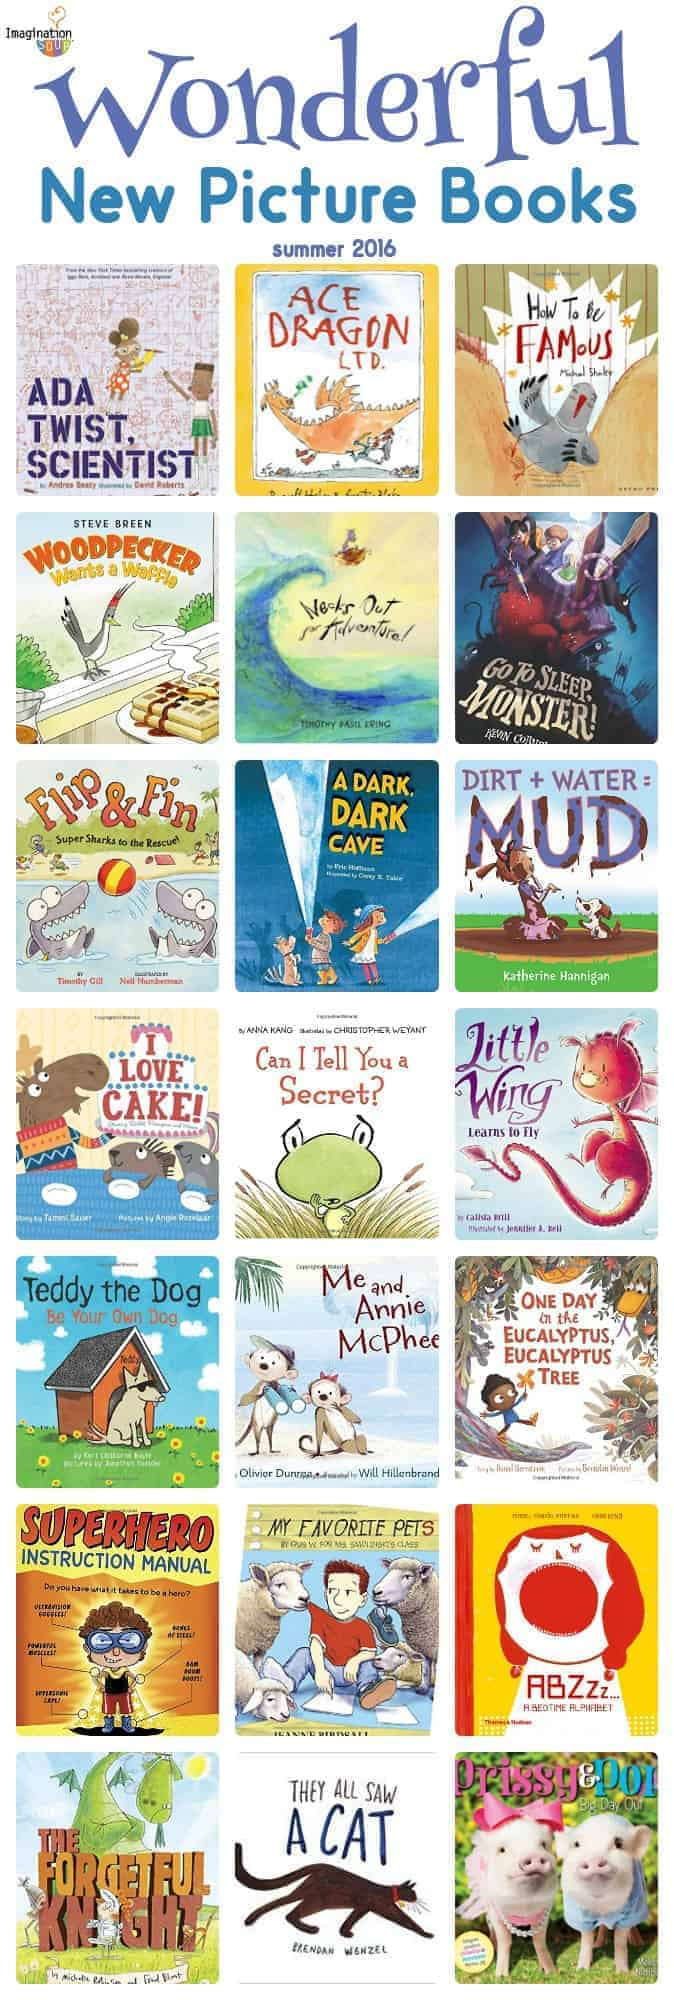 Wonderful NEW Picture Books (summer 2016)